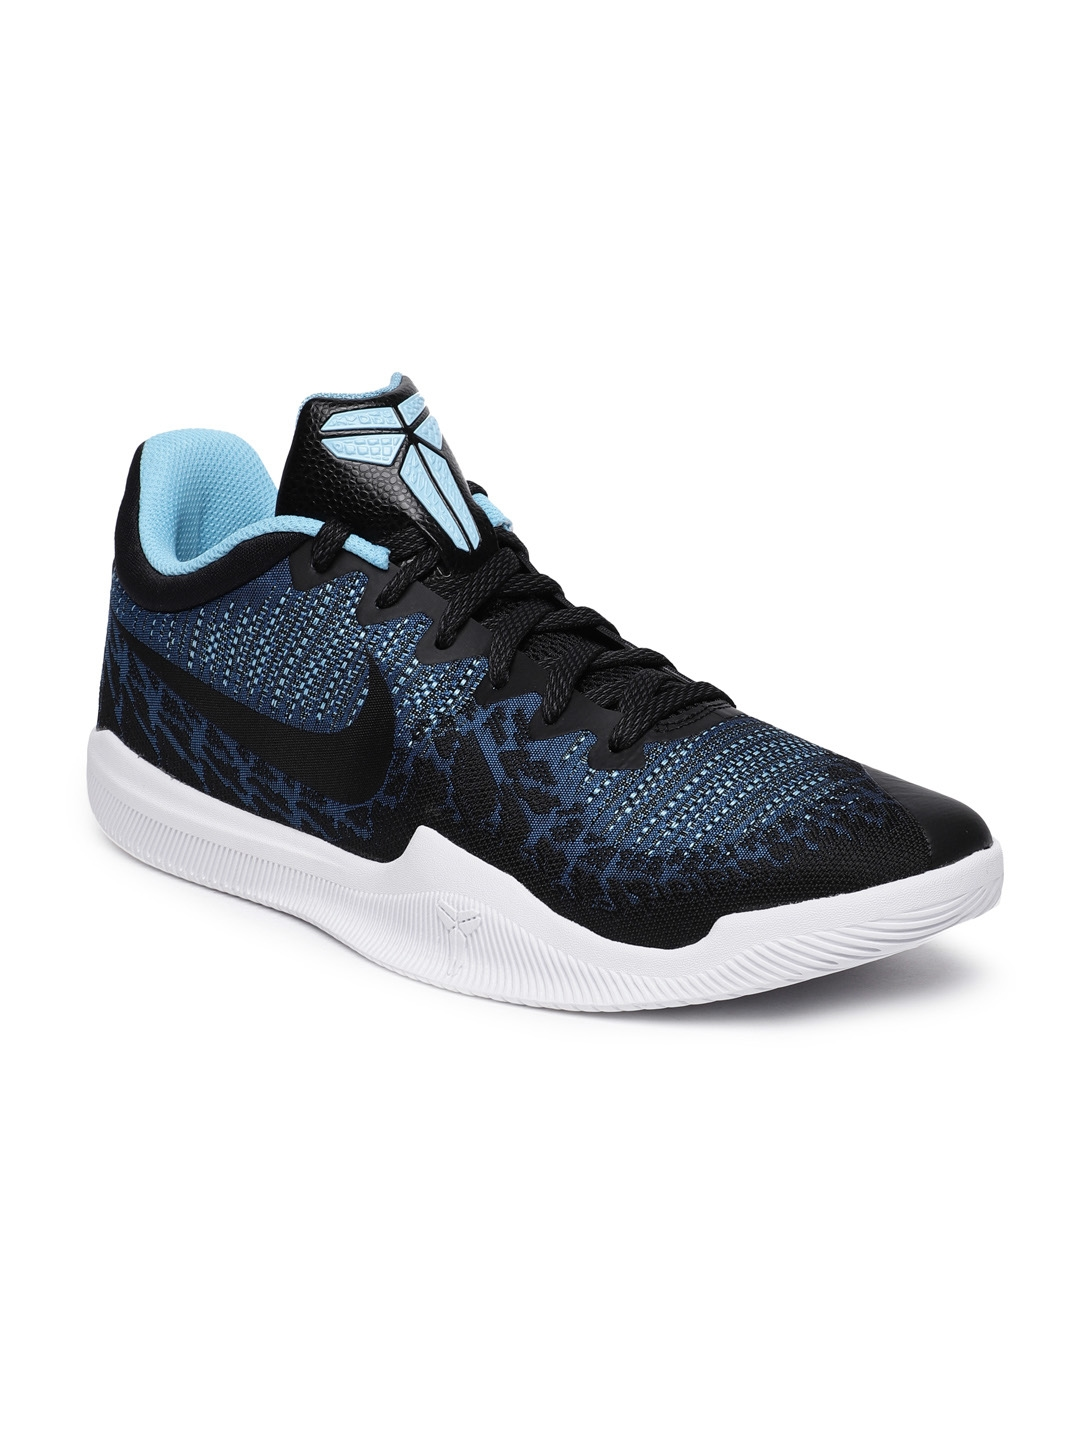 3a36997252b6 Buy Nike Men Black   Blue MAMBA RAGE Basketball Shoes - Sports Shoes ...